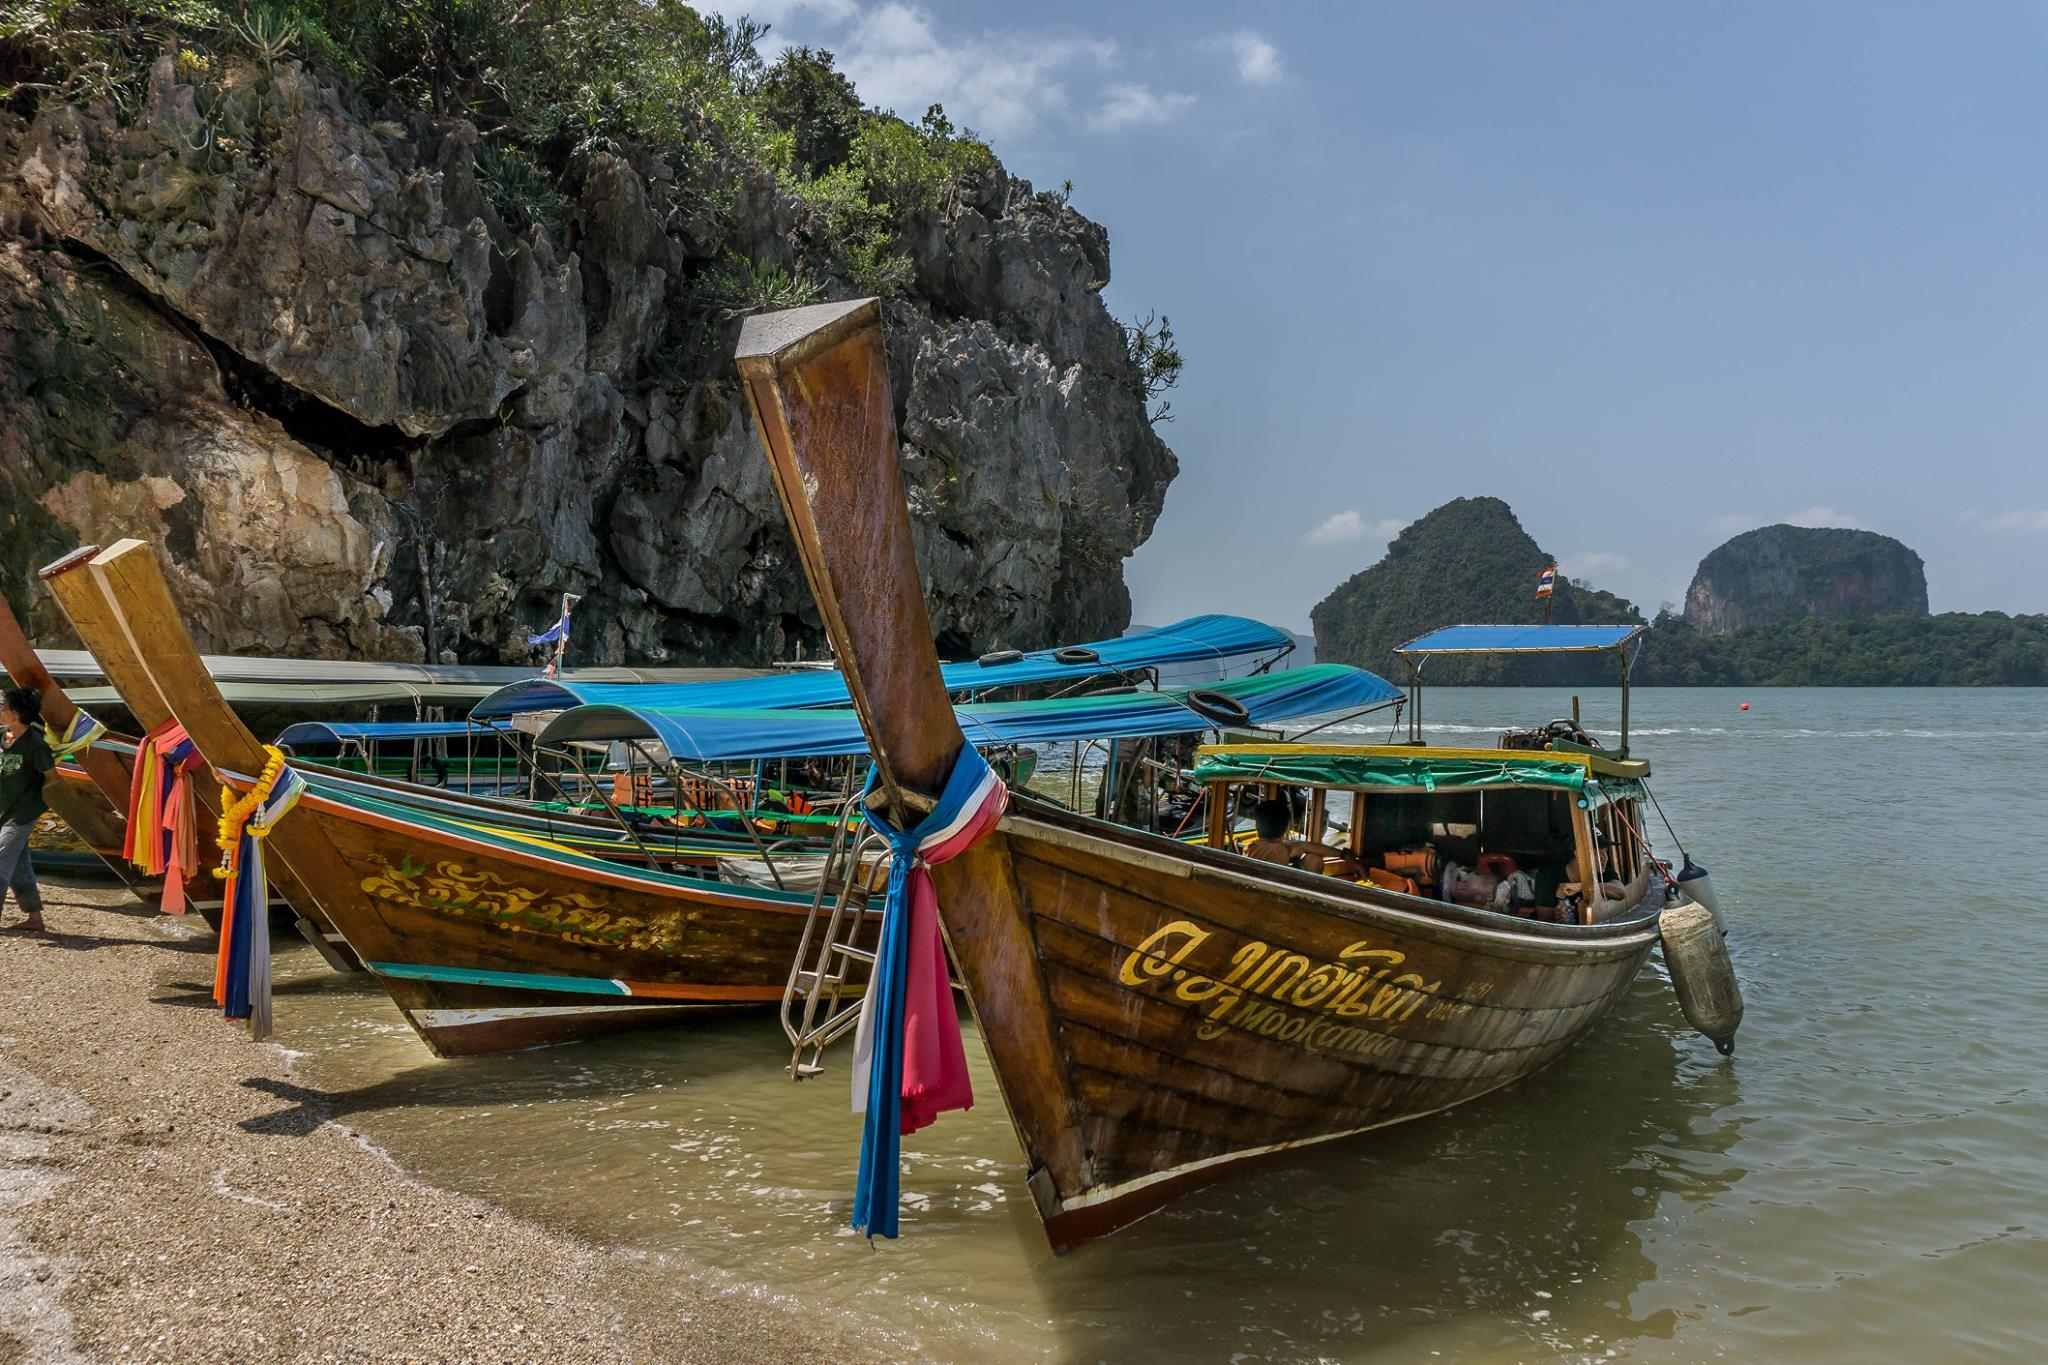 thai-boats-kim-lawson.jpg